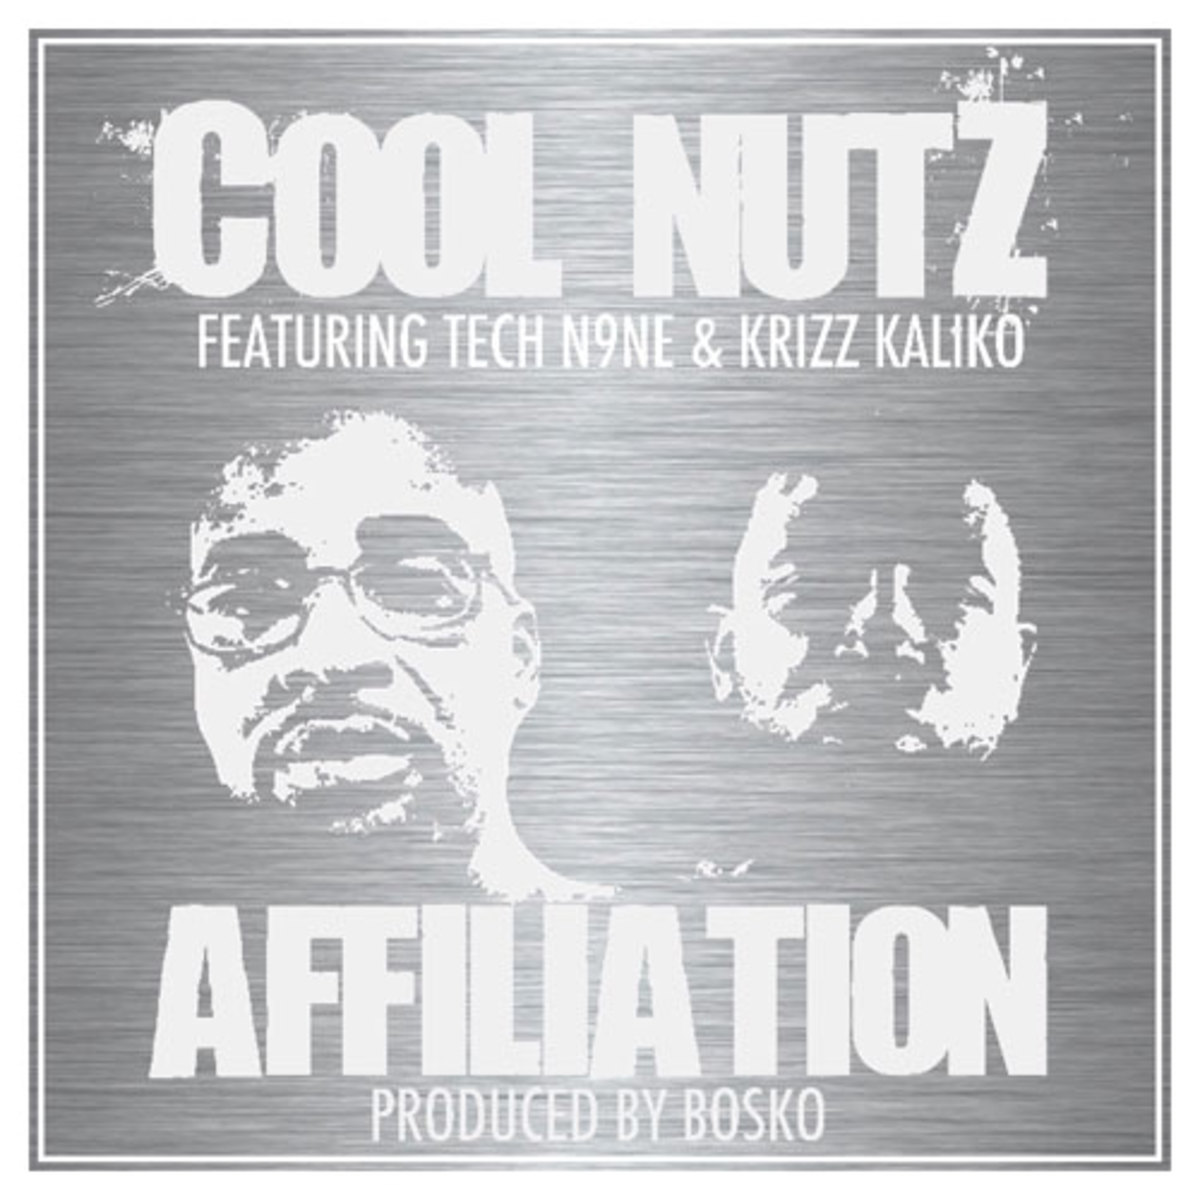 coolnutz-affiliation.jpg